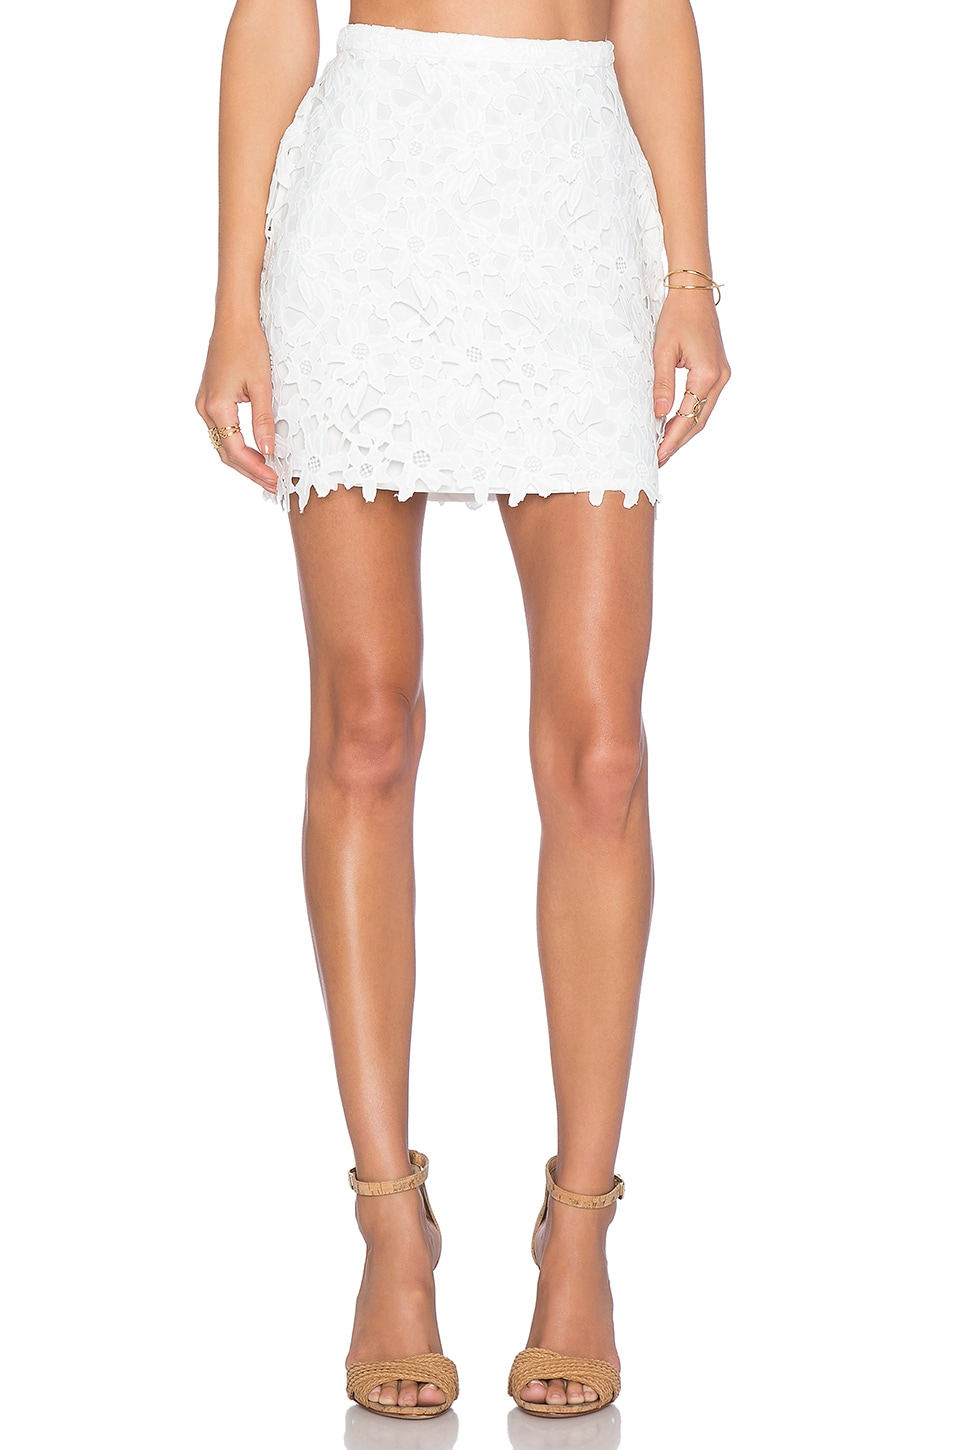 Lovers + Friends x REVOLVE Kiss Me Skirt in White